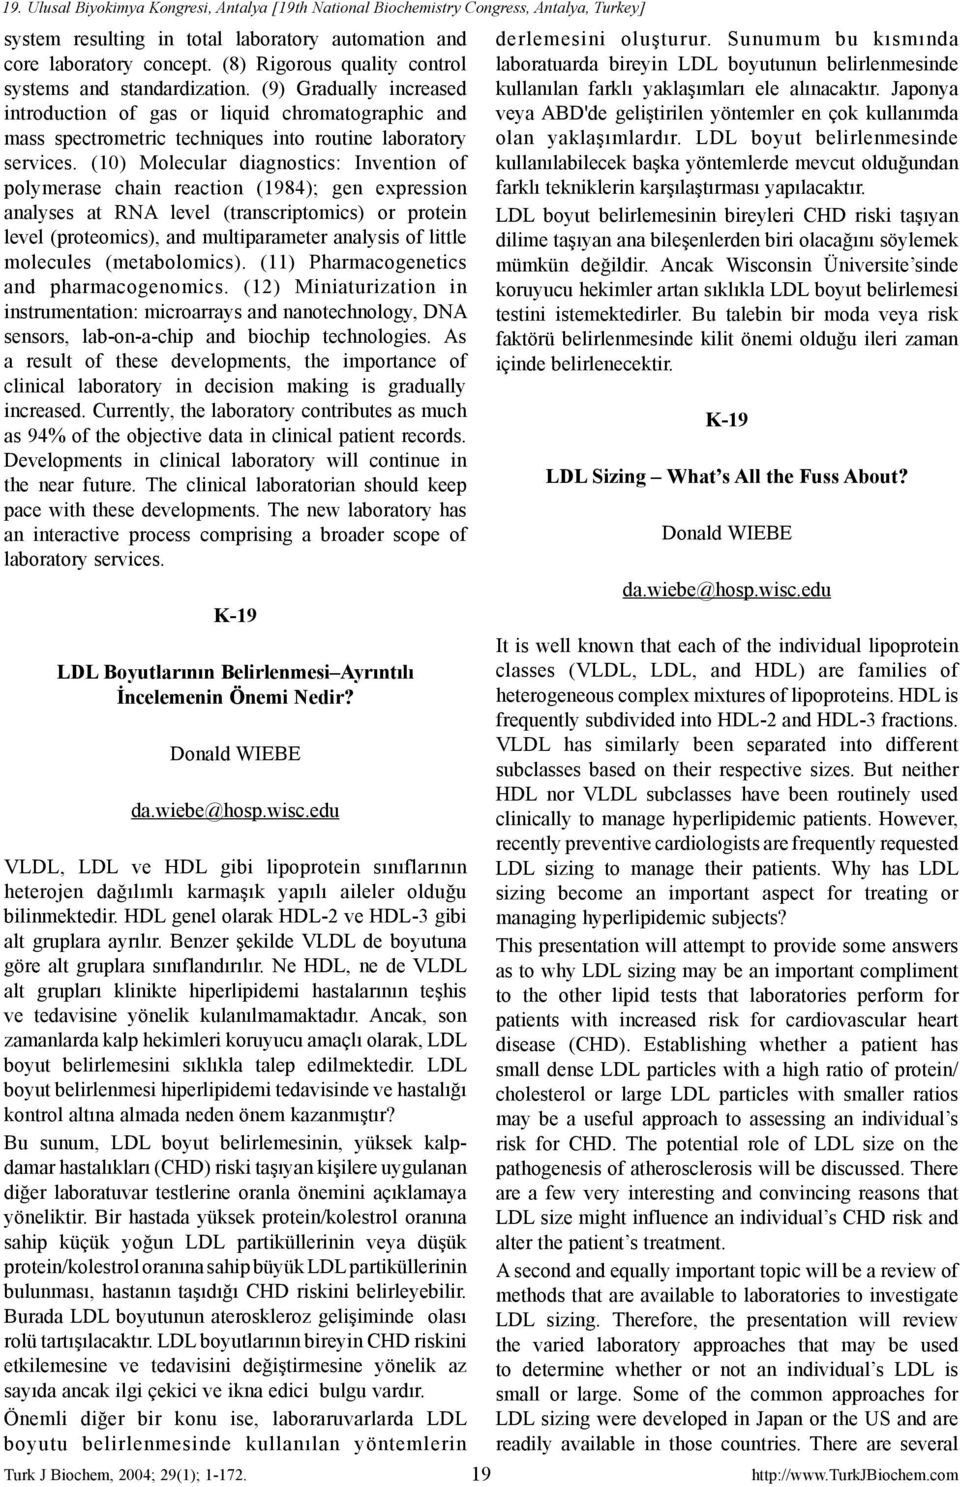 (10) Molecular diagnostics: Invention of polymerase chain reaction (1984); gen expression analyses at RNA level (transcriptomics) or protein level (proteomics), and multiparameter analysis of little